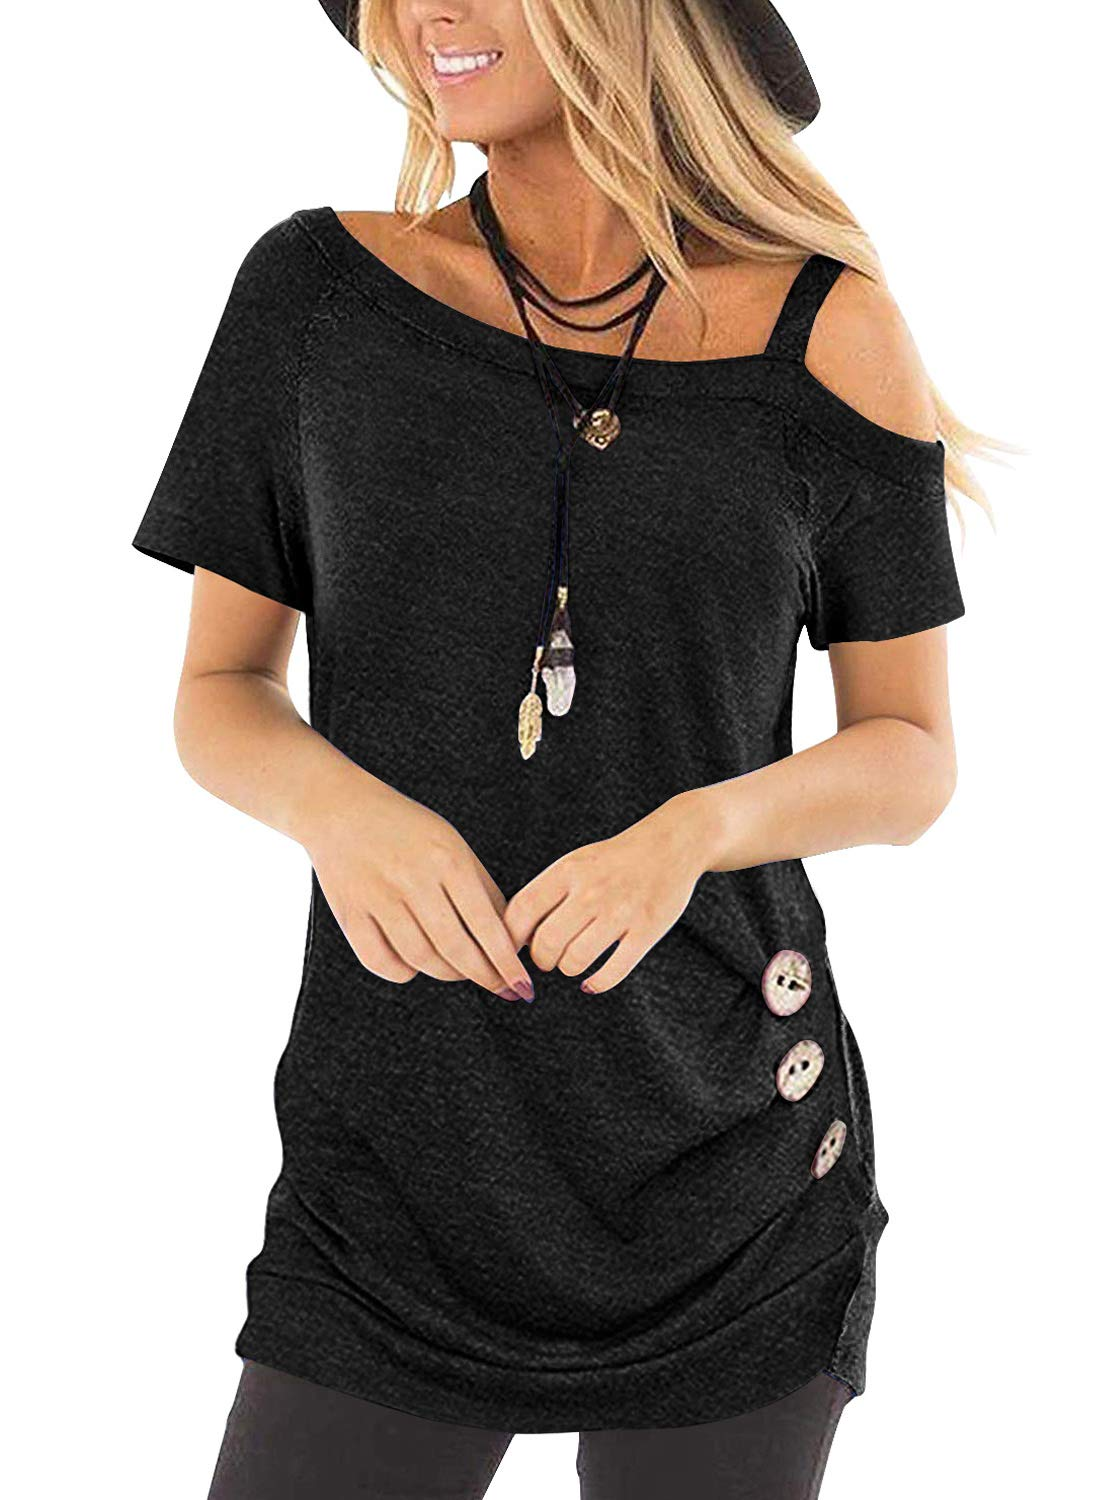 Chase Secret Womens Summer Casual Short Sleeve Cold Shoulder Side Button Tunic T Shirt Blouse Tops XL Black